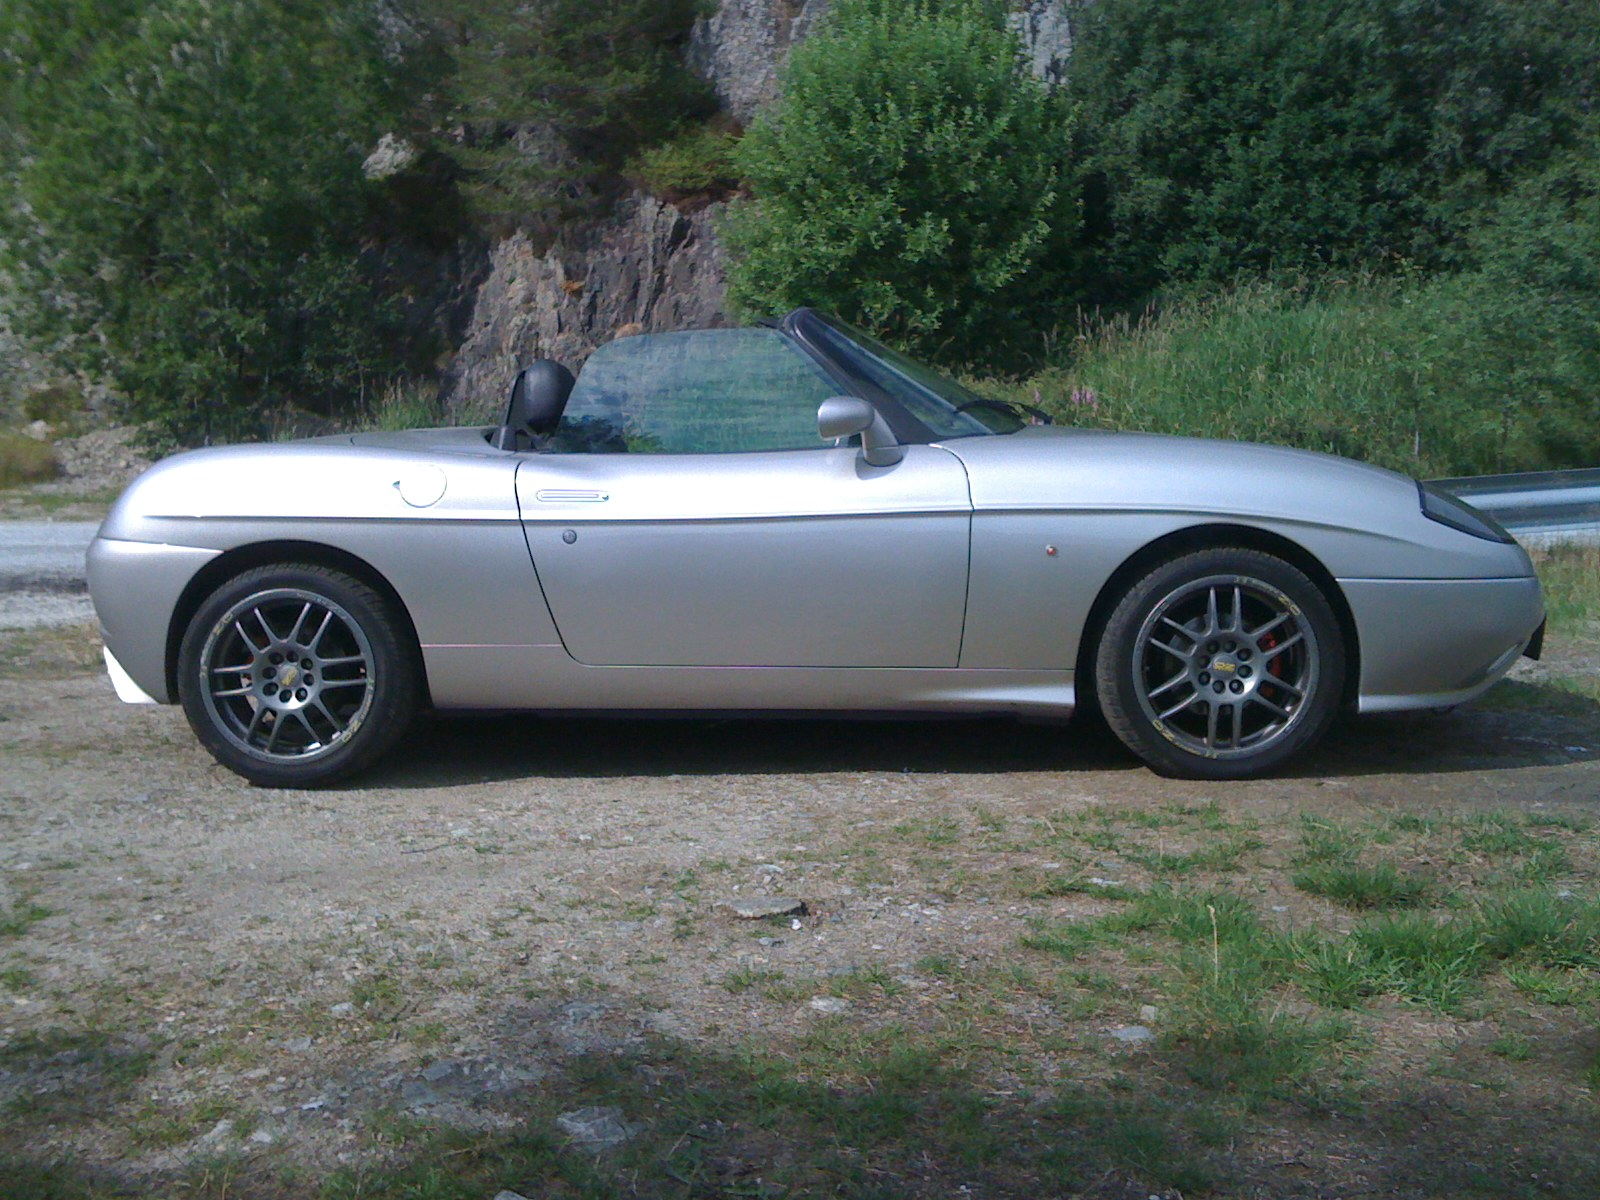 1996 fiat barchetta exterior pictures cargurus. Black Bedroom Furniture Sets. Home Design Ideas